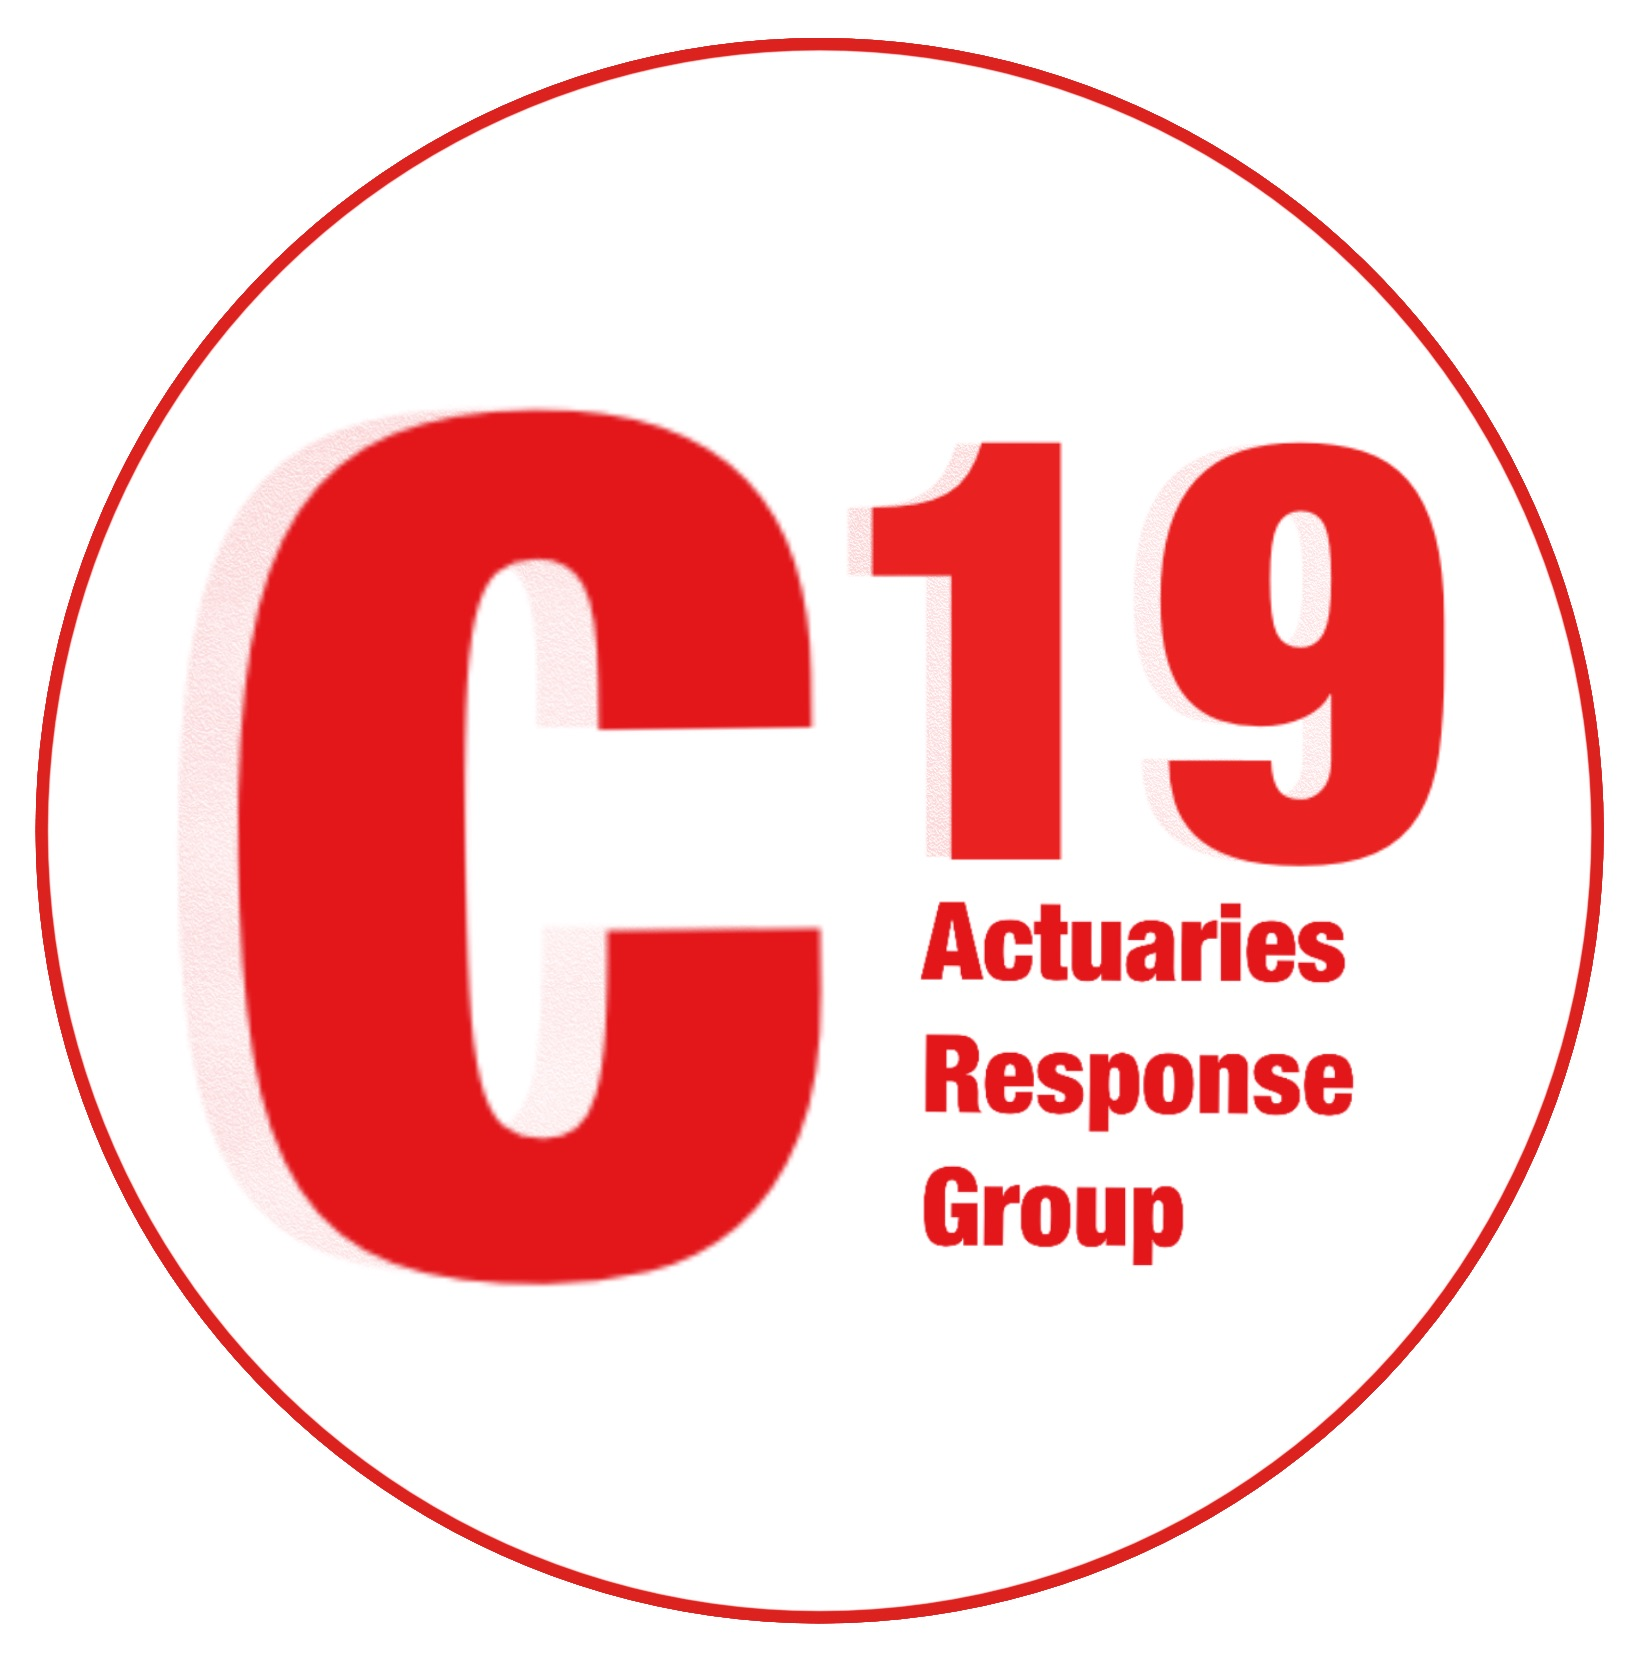 One year on: Reflections from the COVID Actuaries Response Group